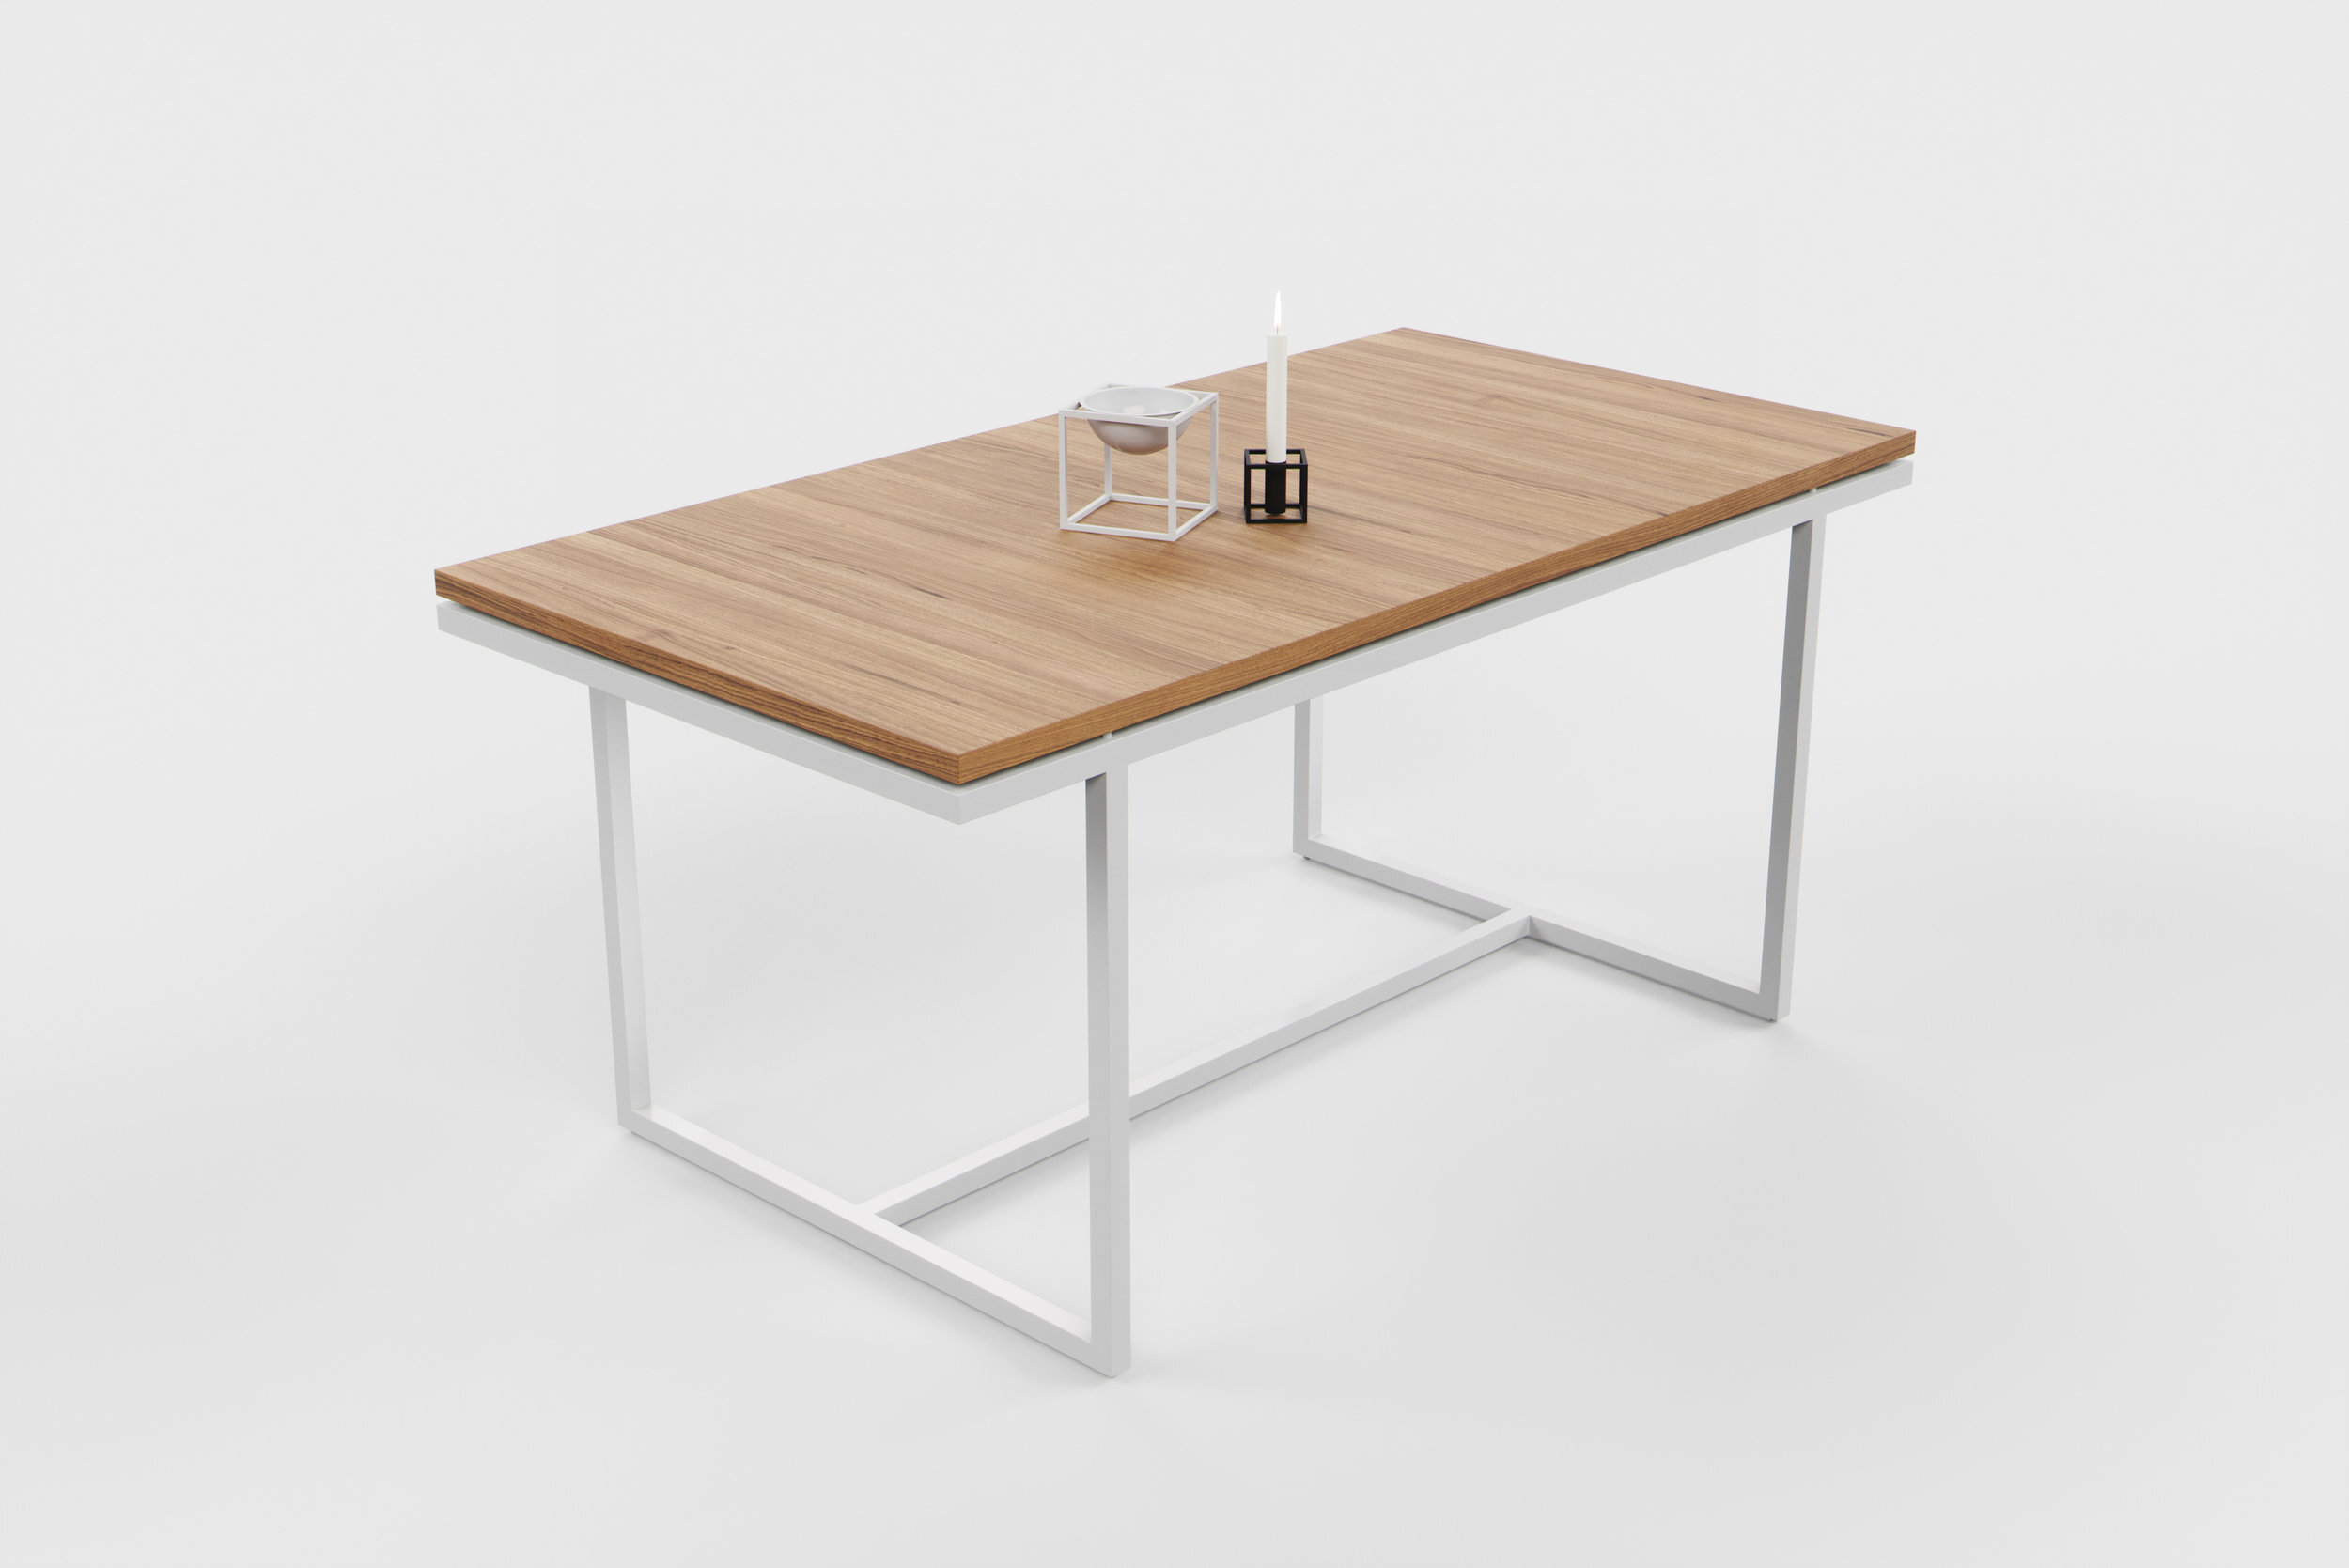 Dining table 3D visualisation